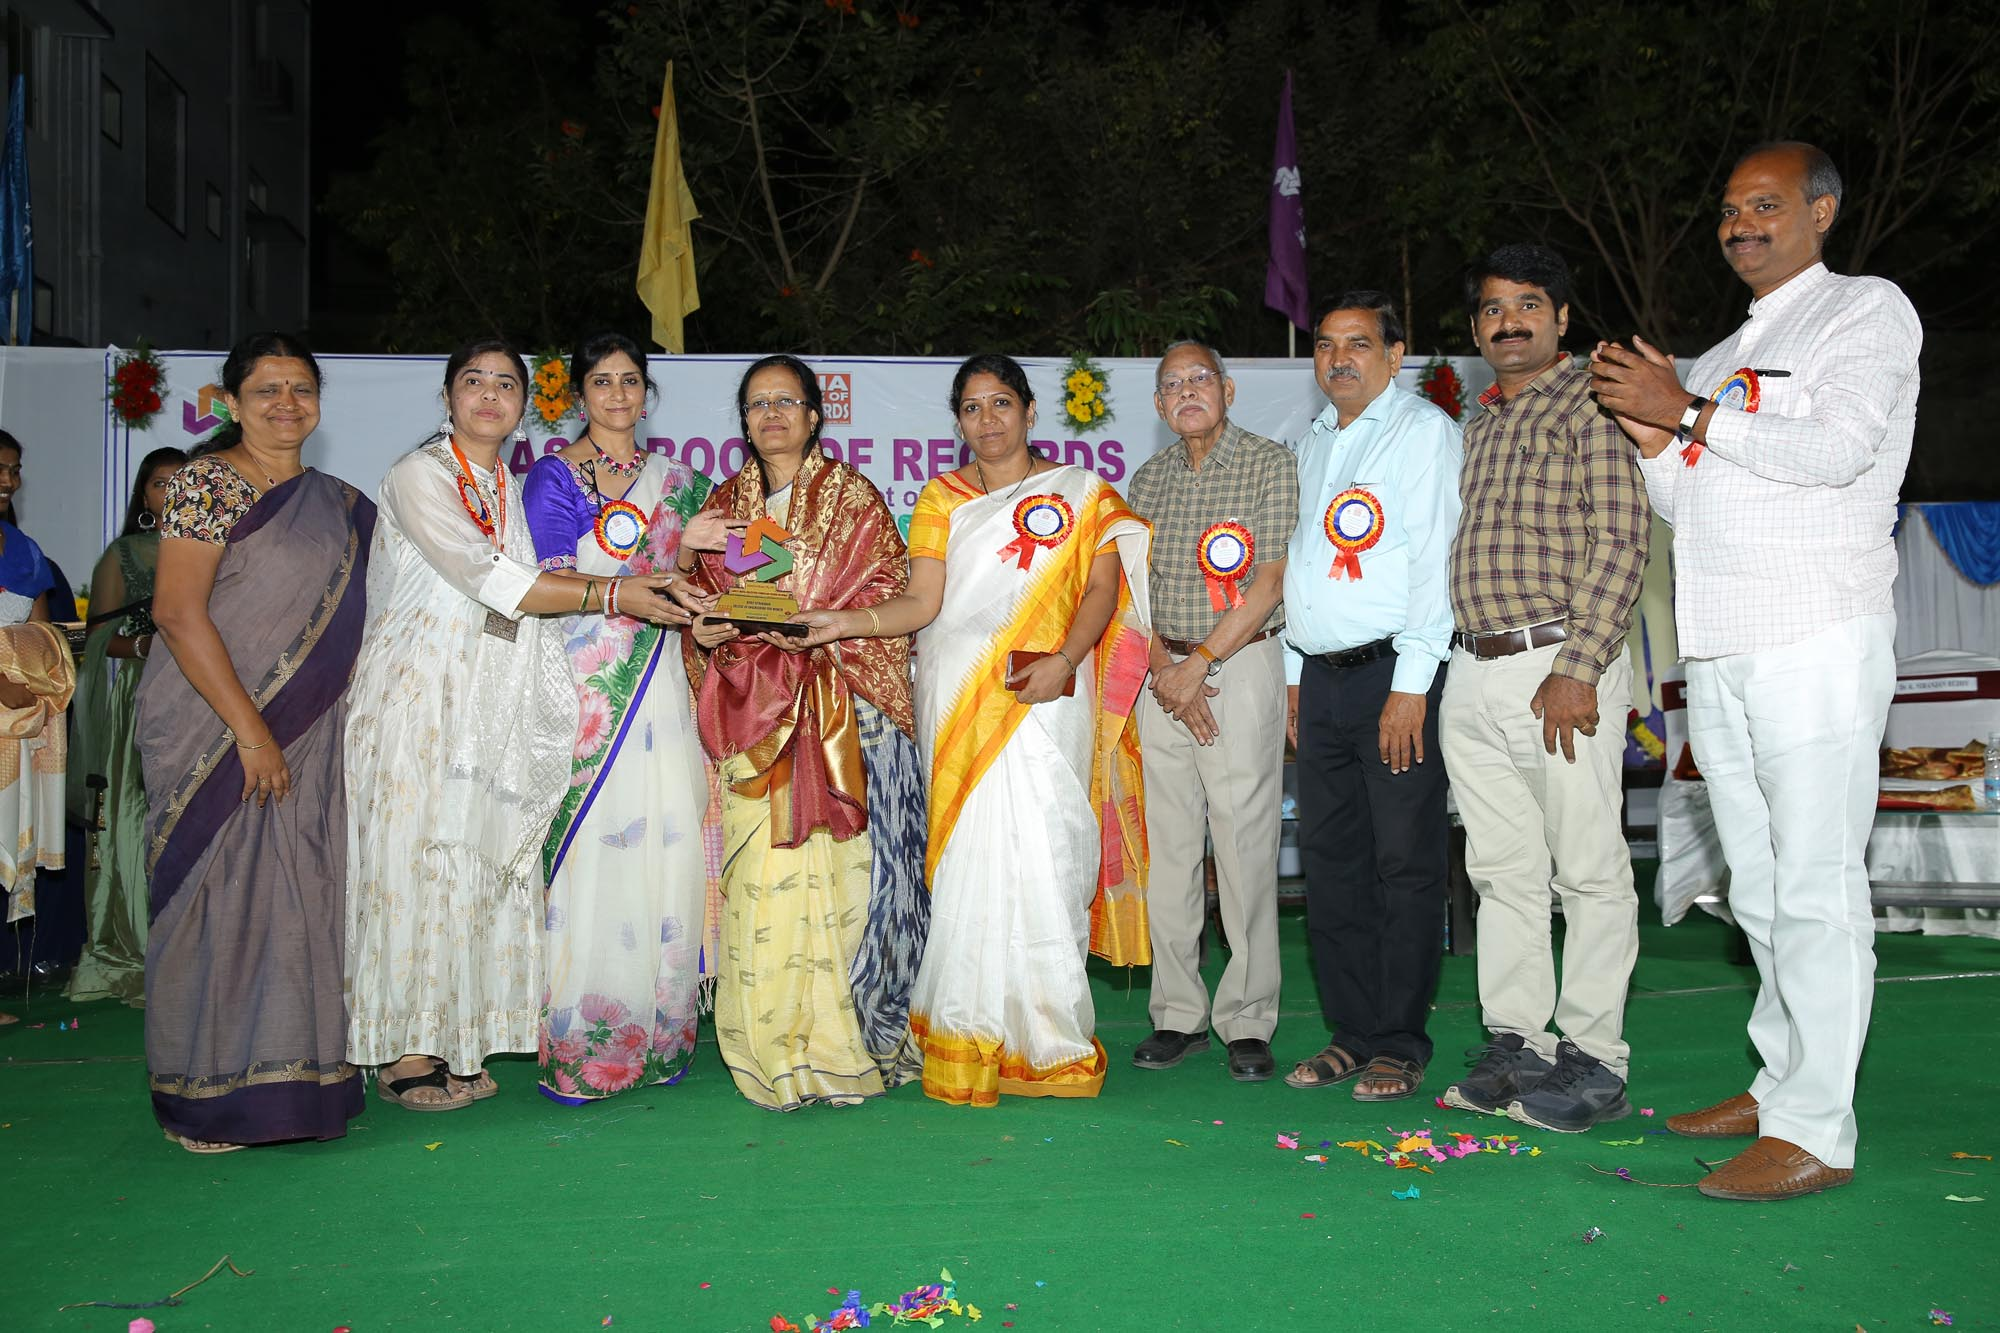 Felicitation to Chief Guest Dr Vasudha Rani